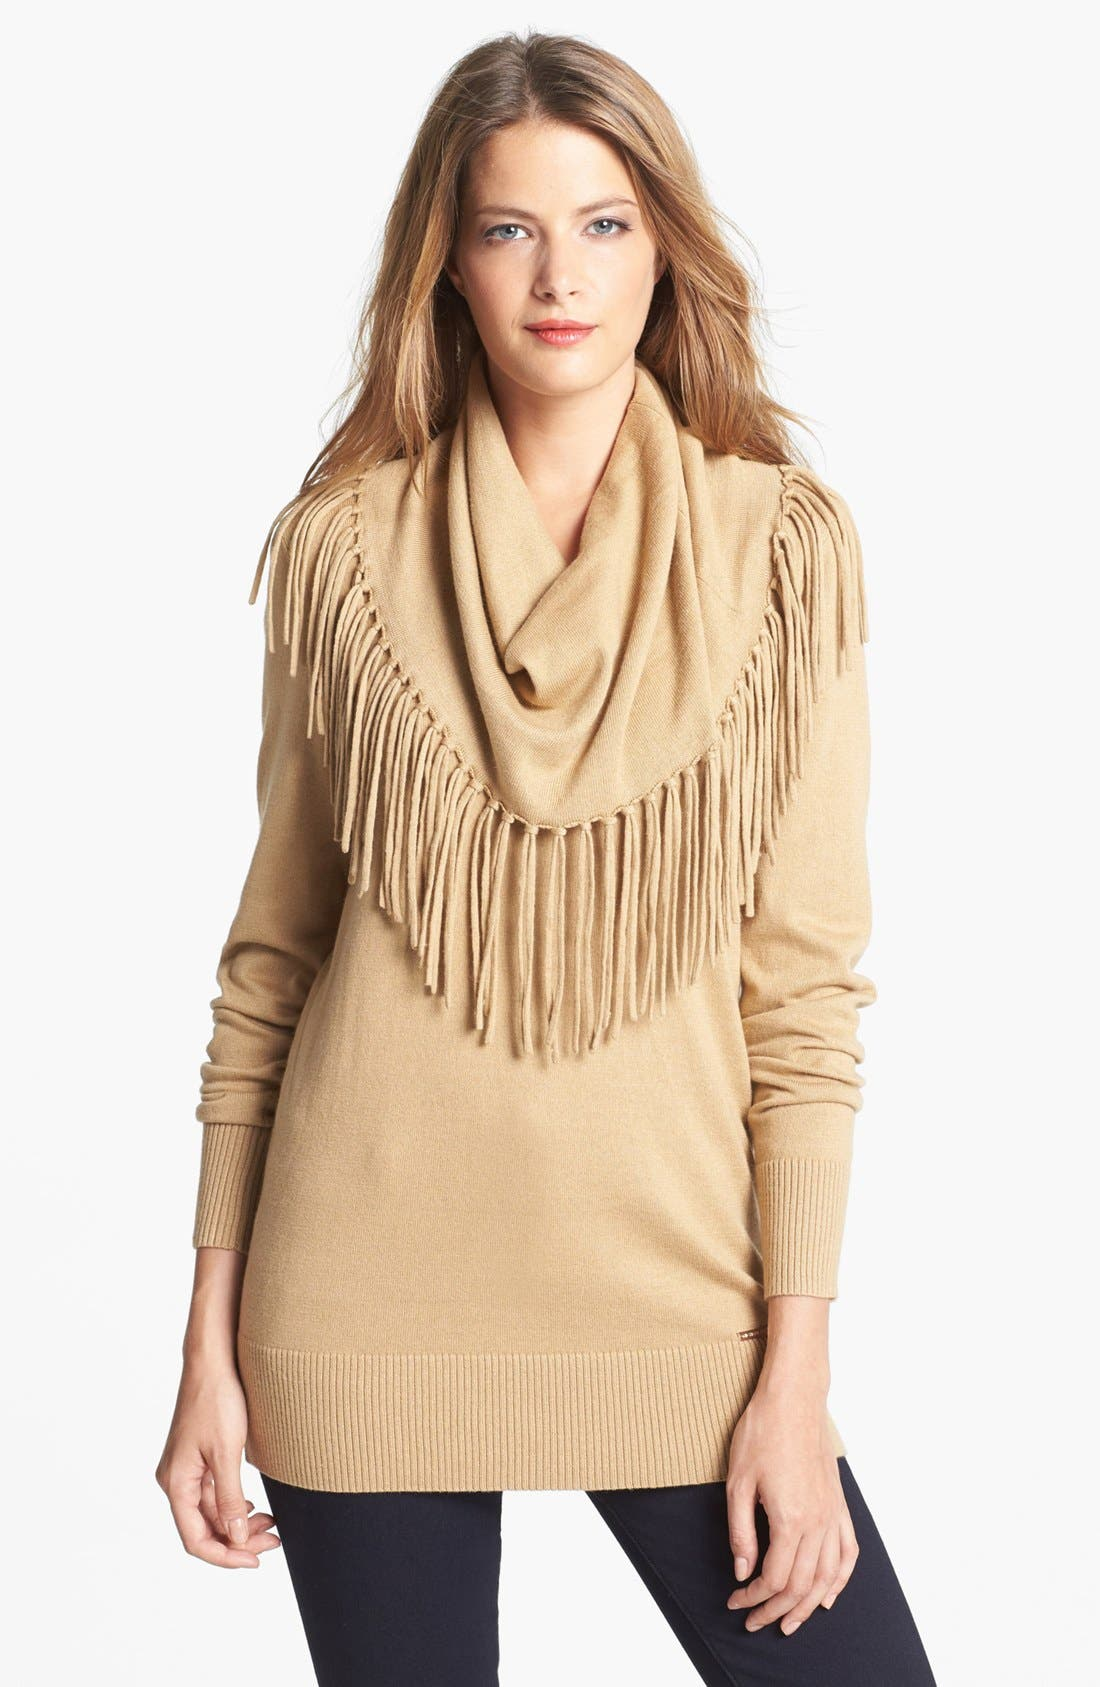 Alternate Image 1 Selected - MICHAEL Michael Kors Fringed Cowl Neck Sweater (Petite)